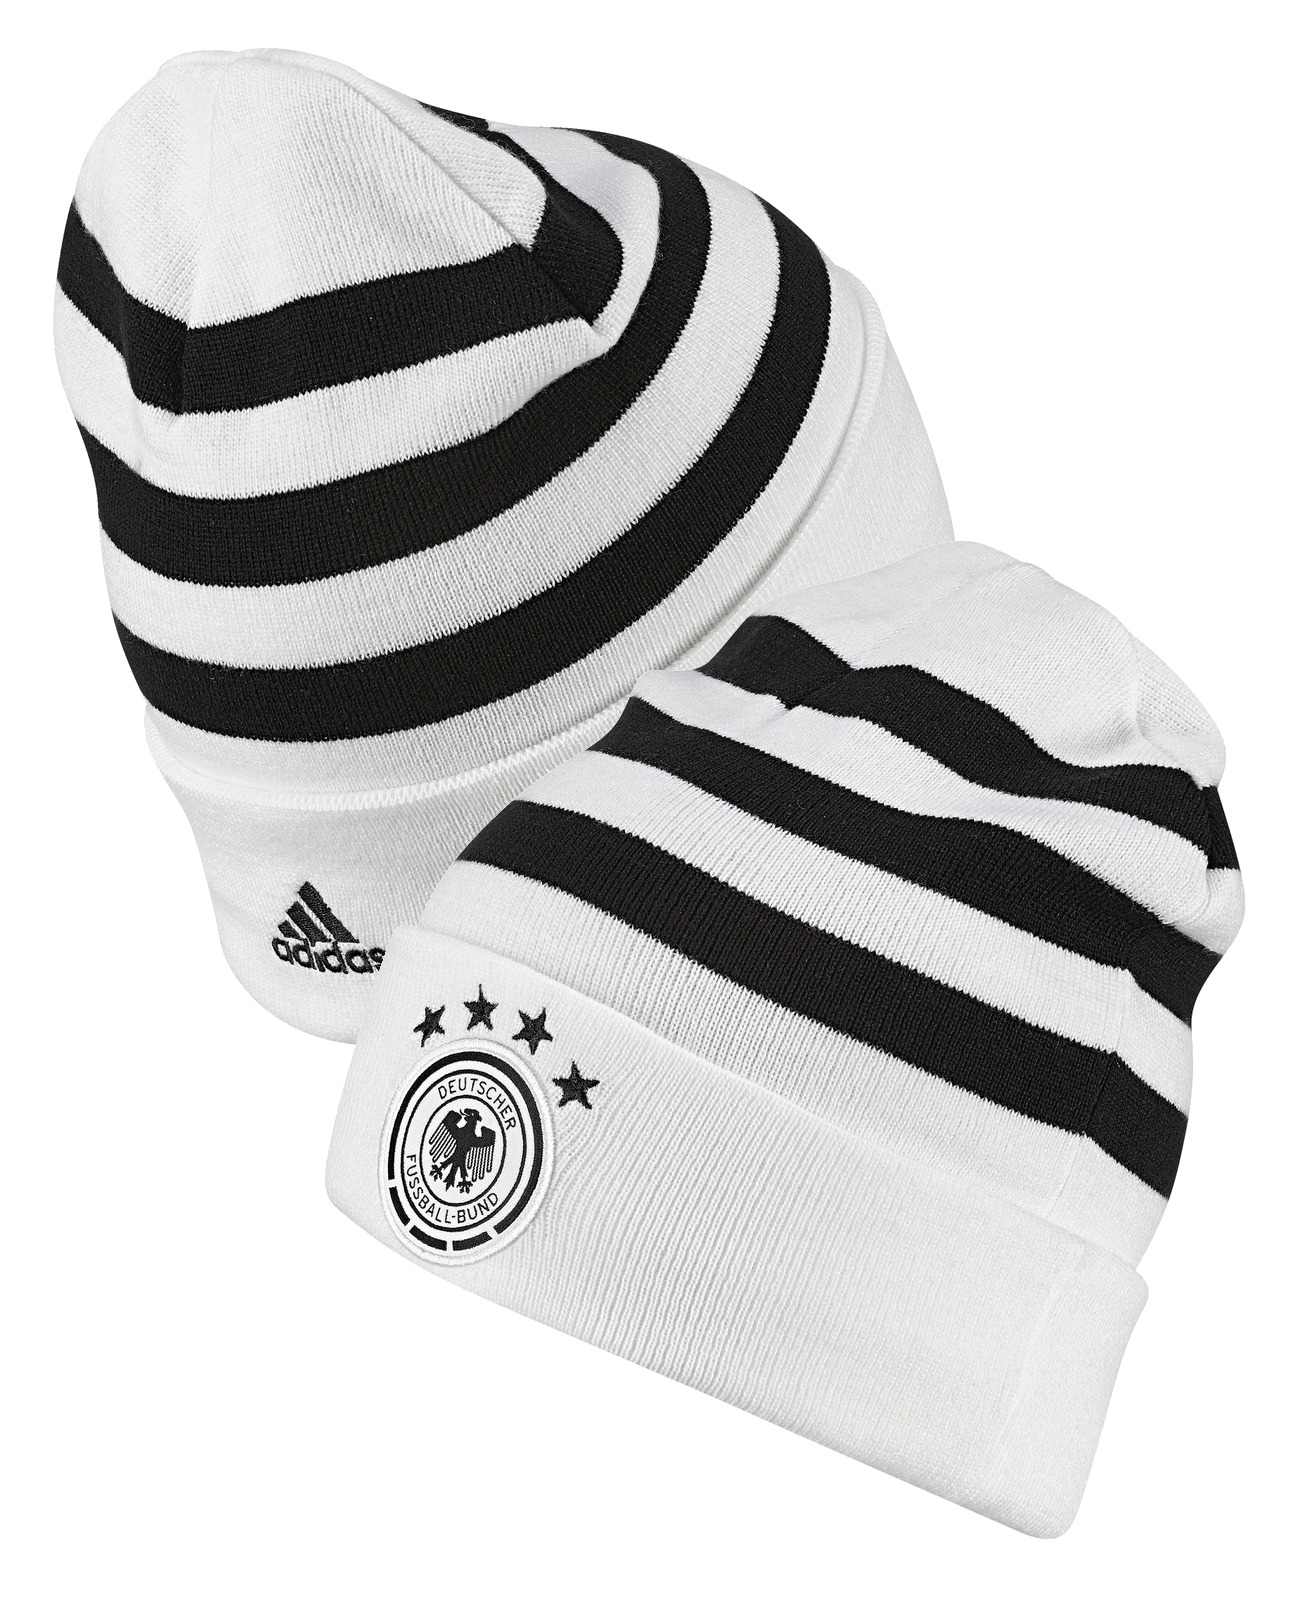 Wonderful Cap World Cup 2018 - front-CF4947-gall  Trends_67794 .jpg